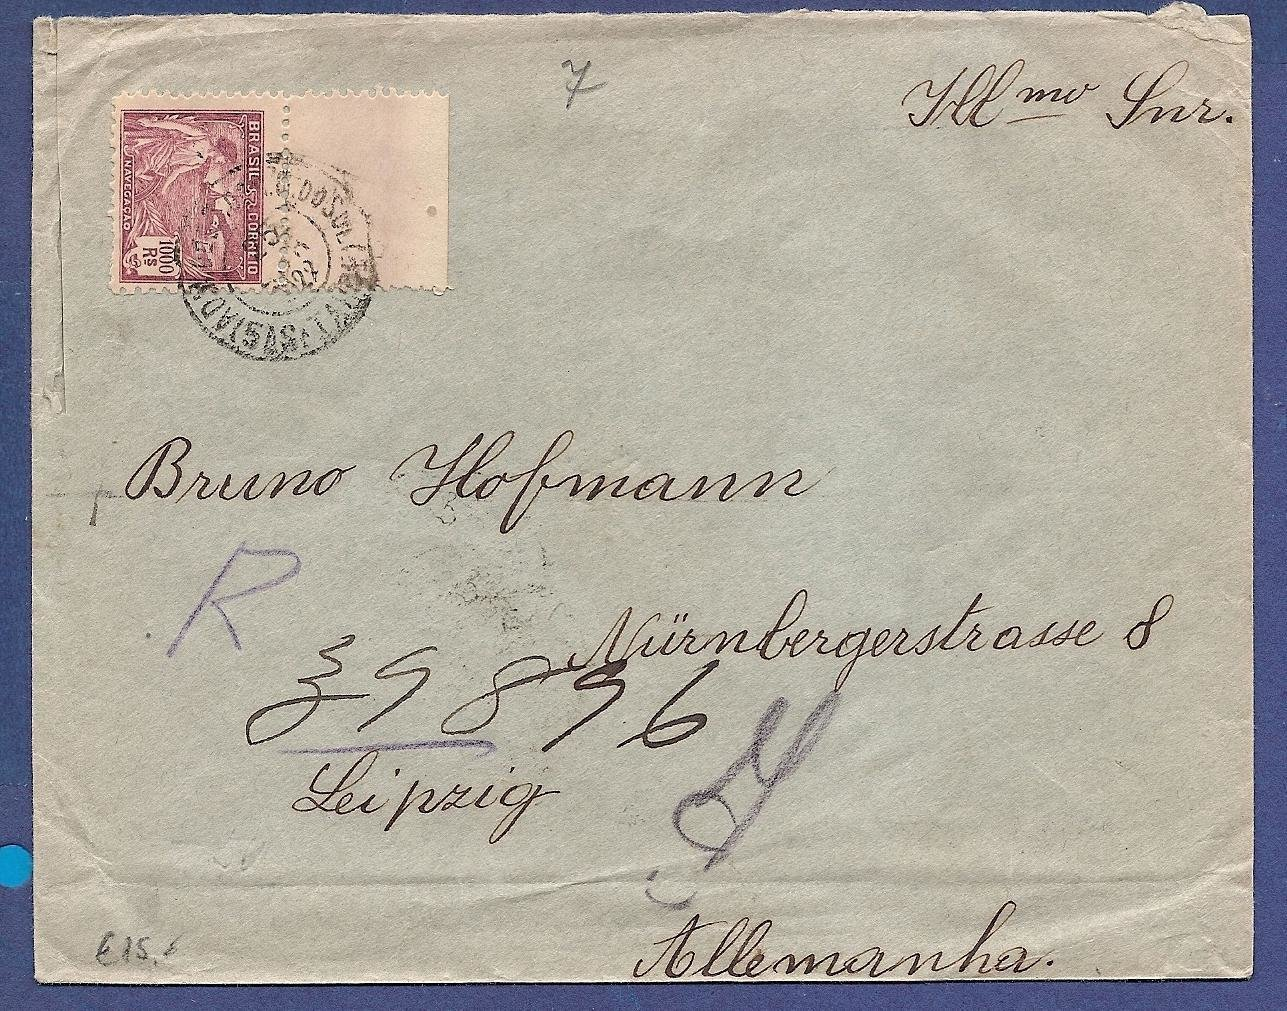 BRAZIL R cover 1922 with 1000Rs franking to Germany